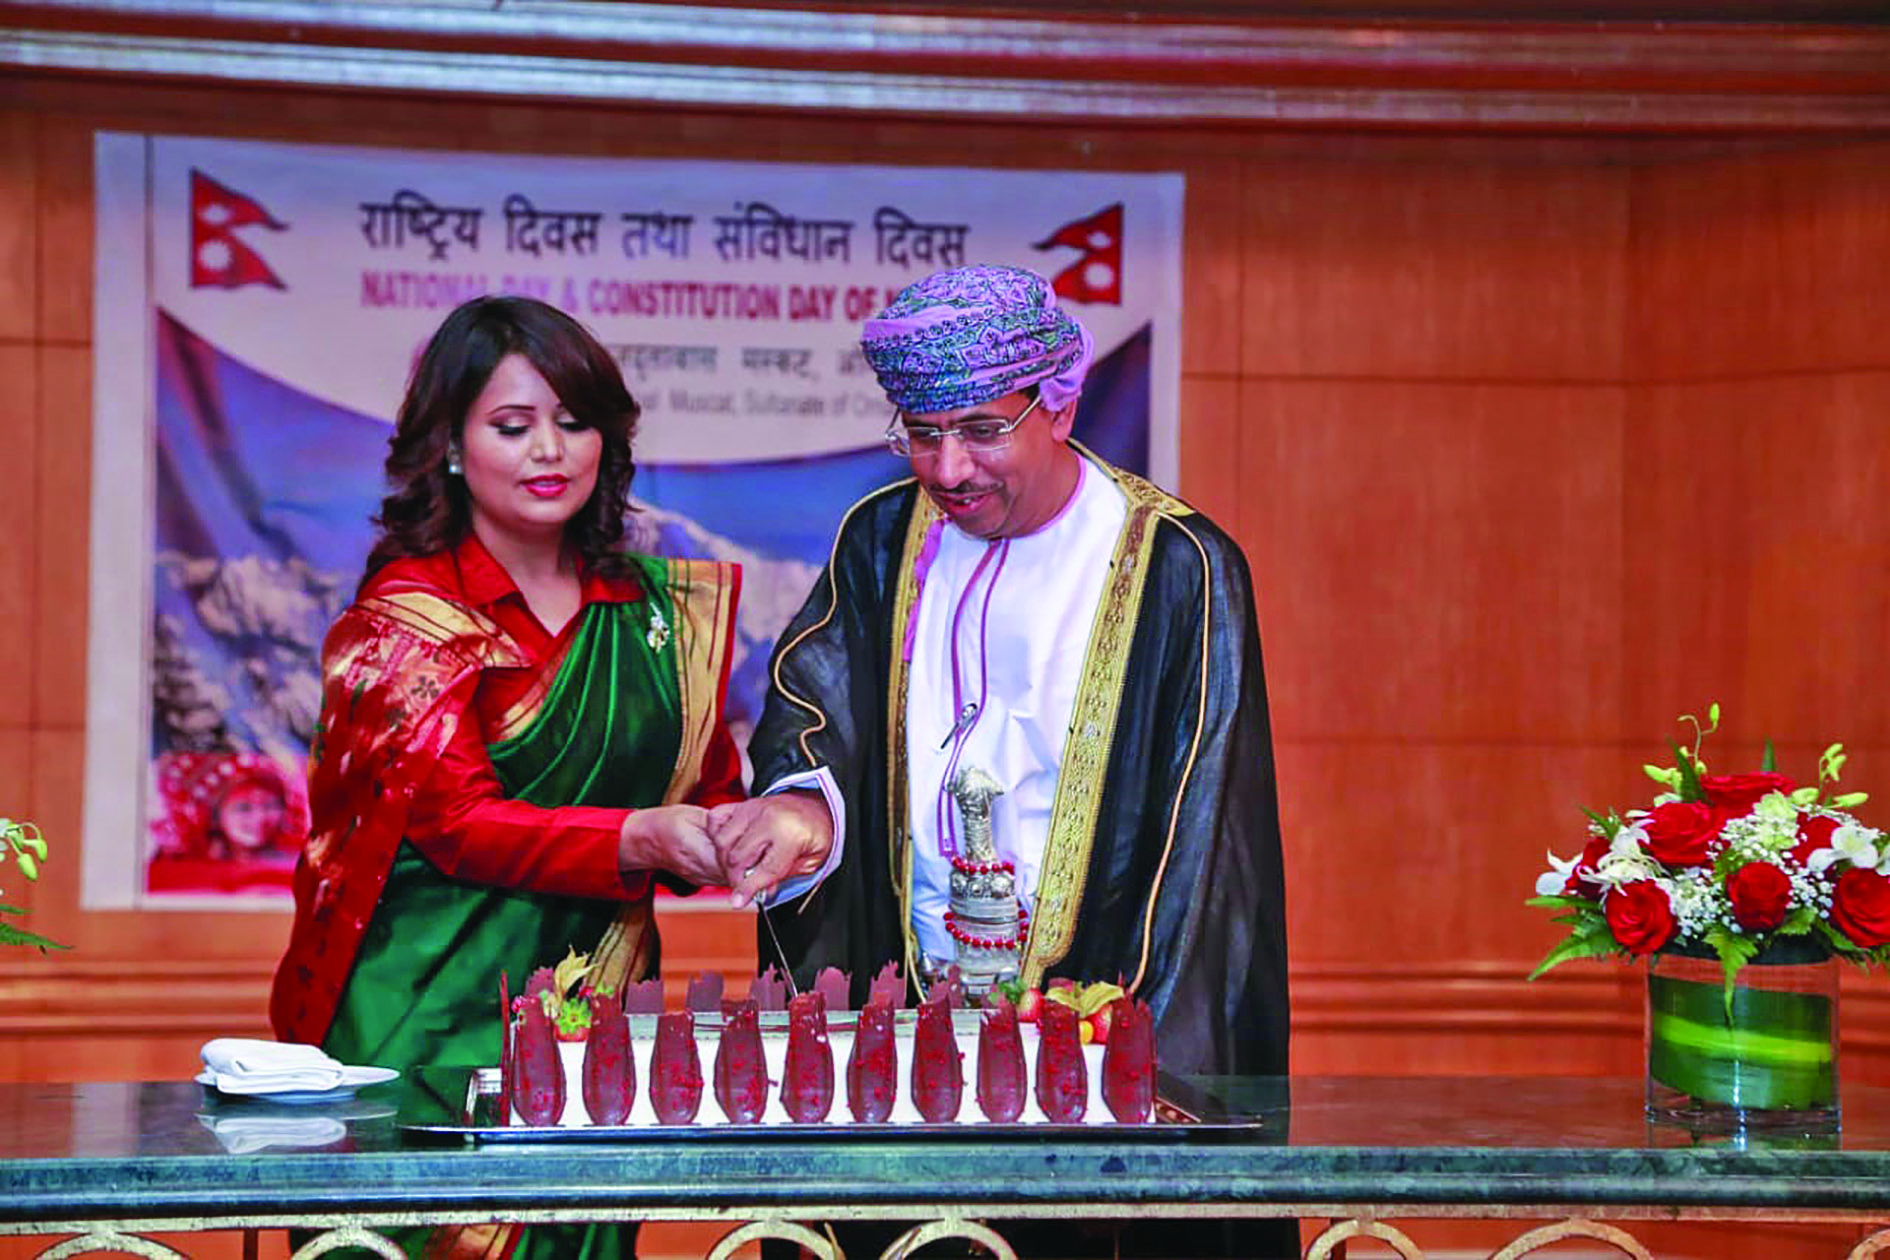 National Day of Nepal celebrated